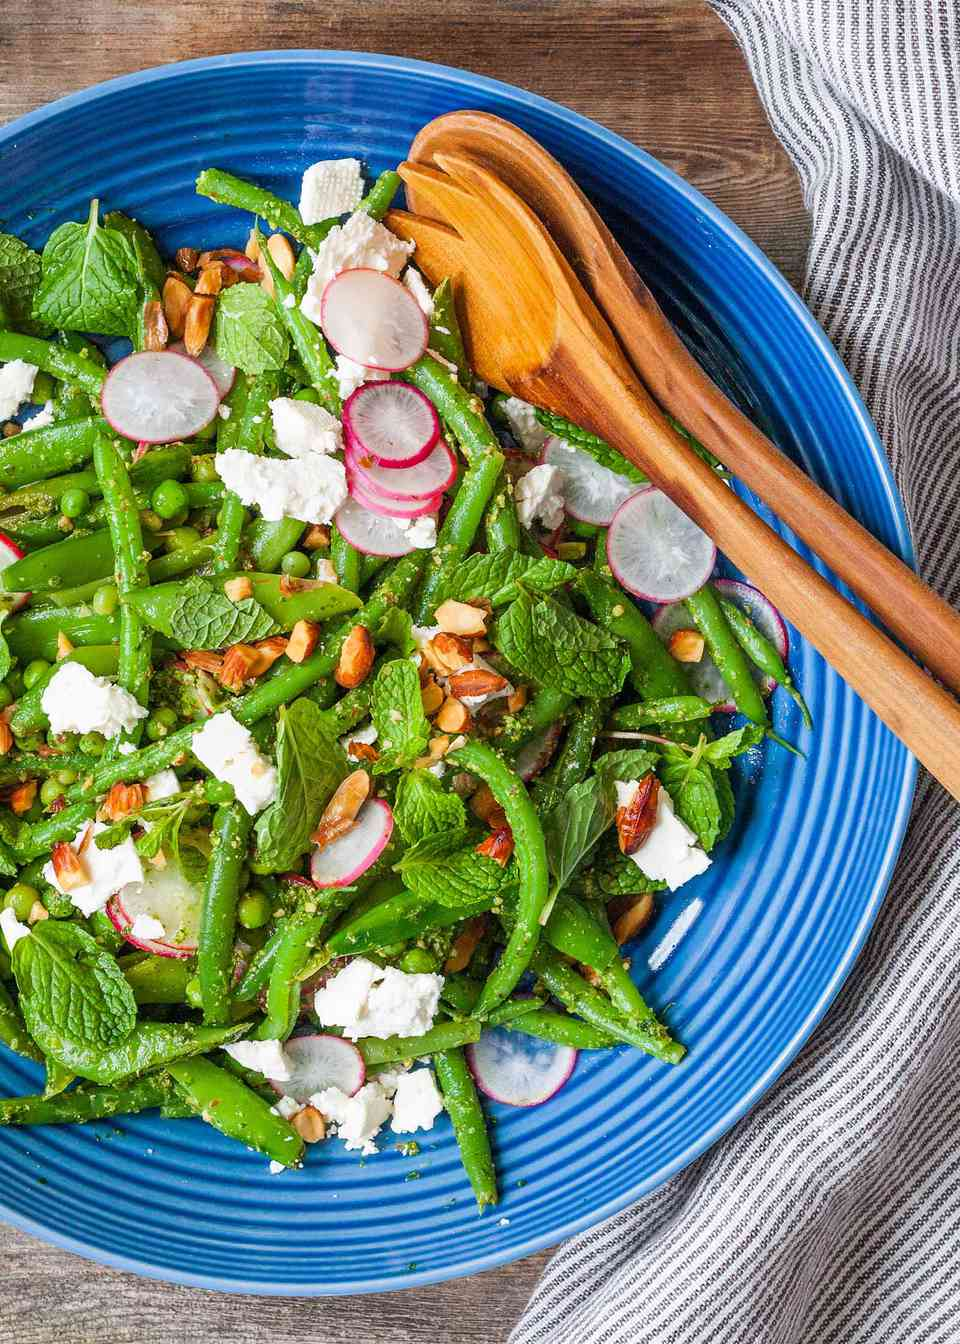 Easy Green Bean Recipe with Mint Pesto - blue bowl with a salad of green beans, radish, and wooden serving spoons on a wood table.